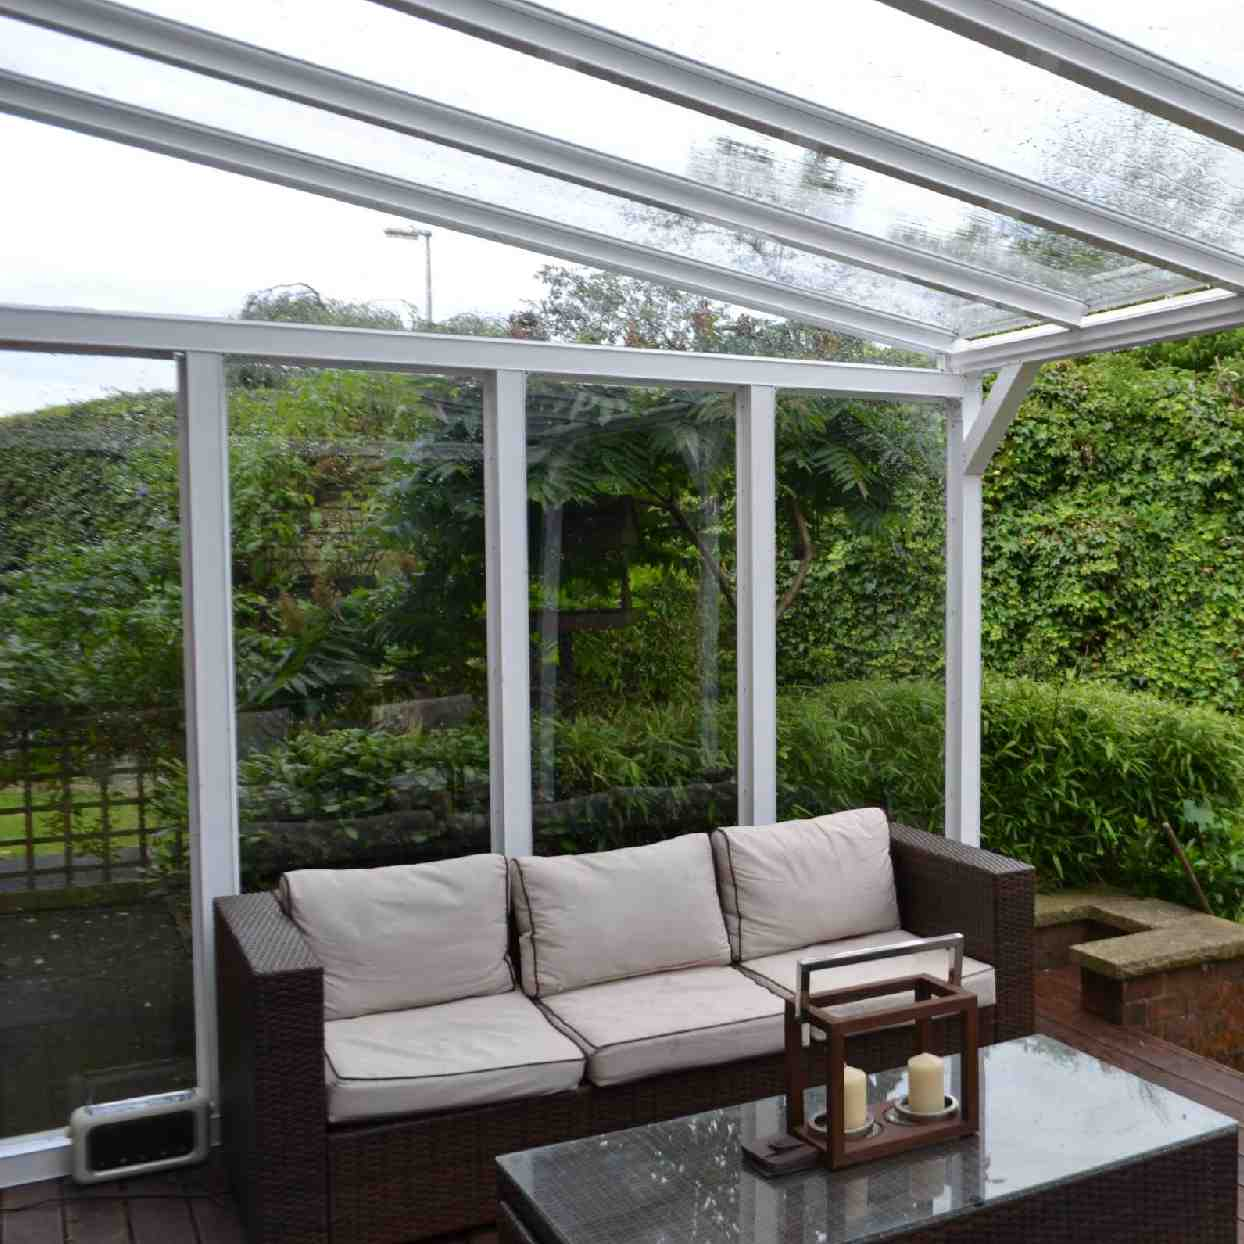 Buy Omega Verandah with 16mm Polycarbonate Glazing - 6.0m (W) x 4.5m (P), (3) Supporting Posts online today